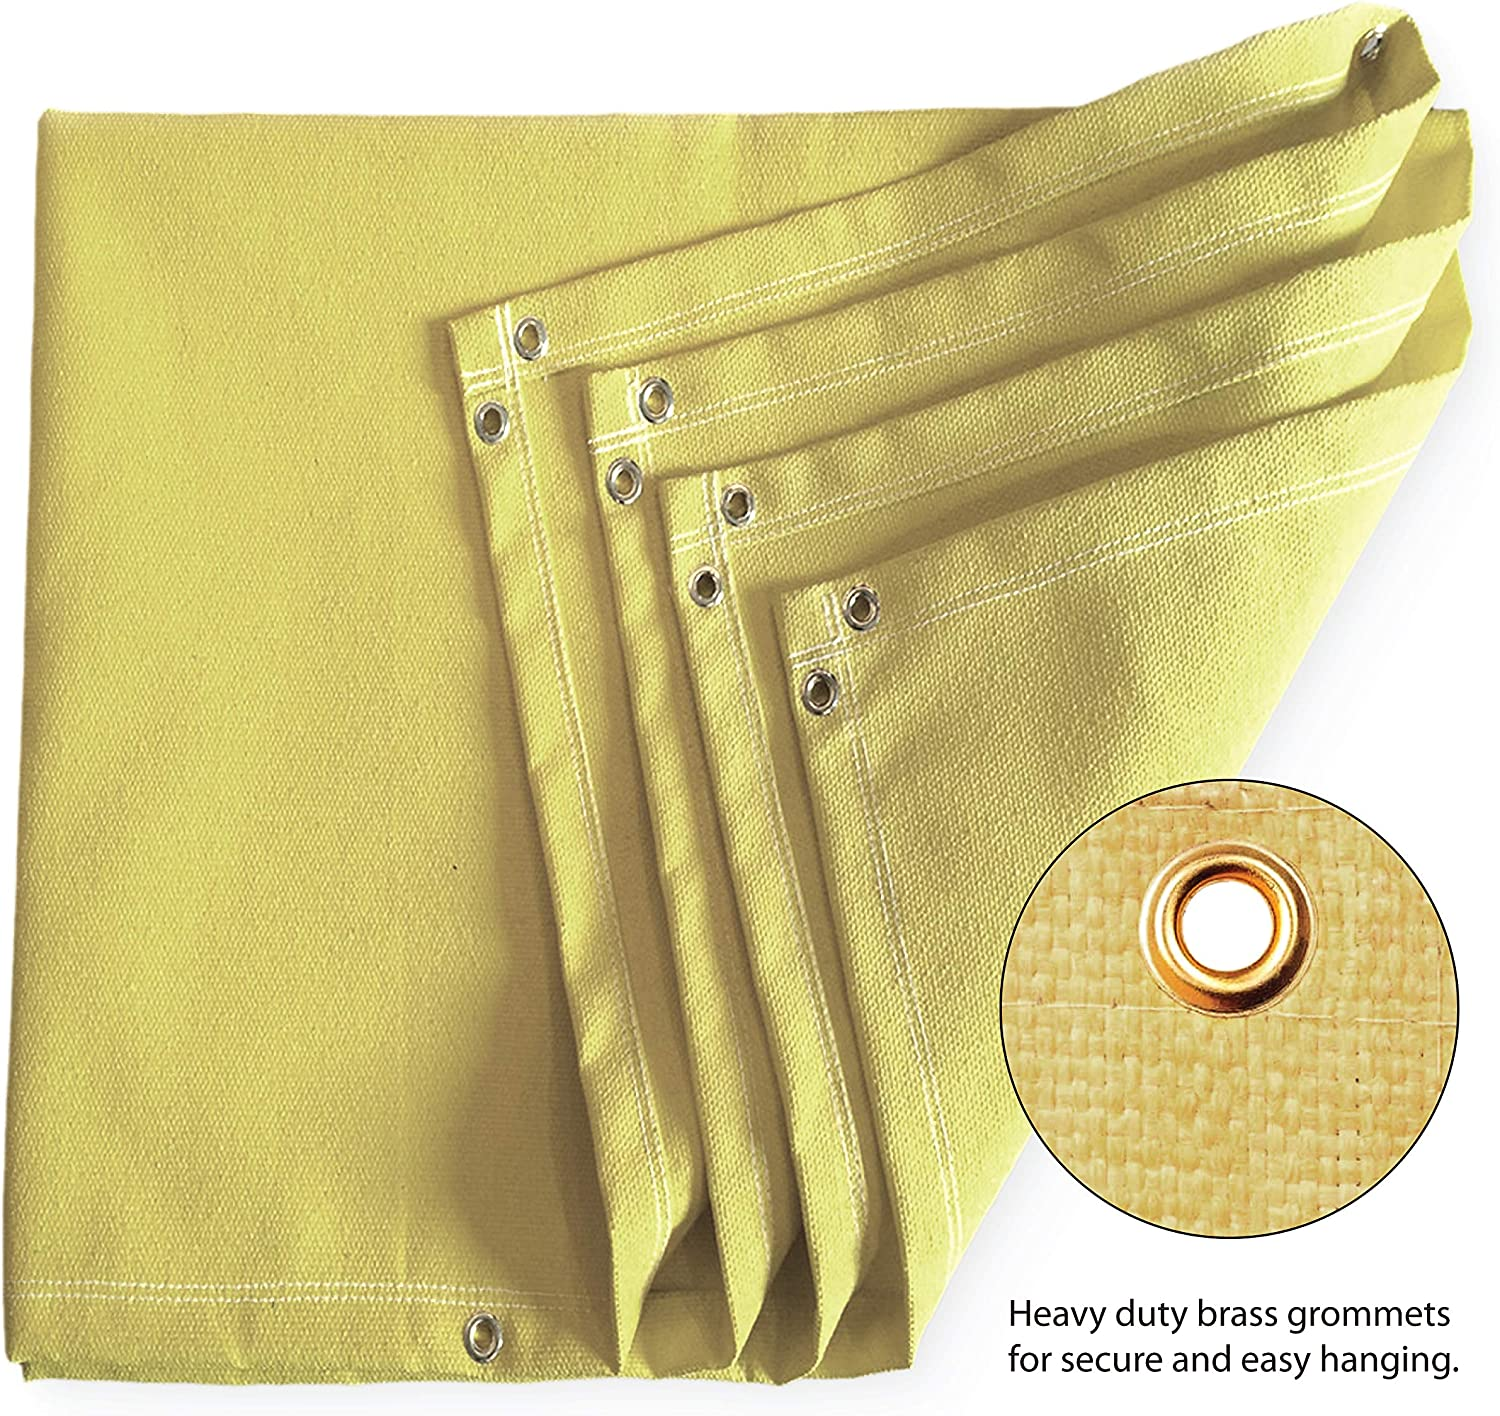 Brass grommets for easy Hanging and Protection Cover Thermal resistant insulation Retardant Fiberglass 4 x 6 Welding Blanket Fireproof